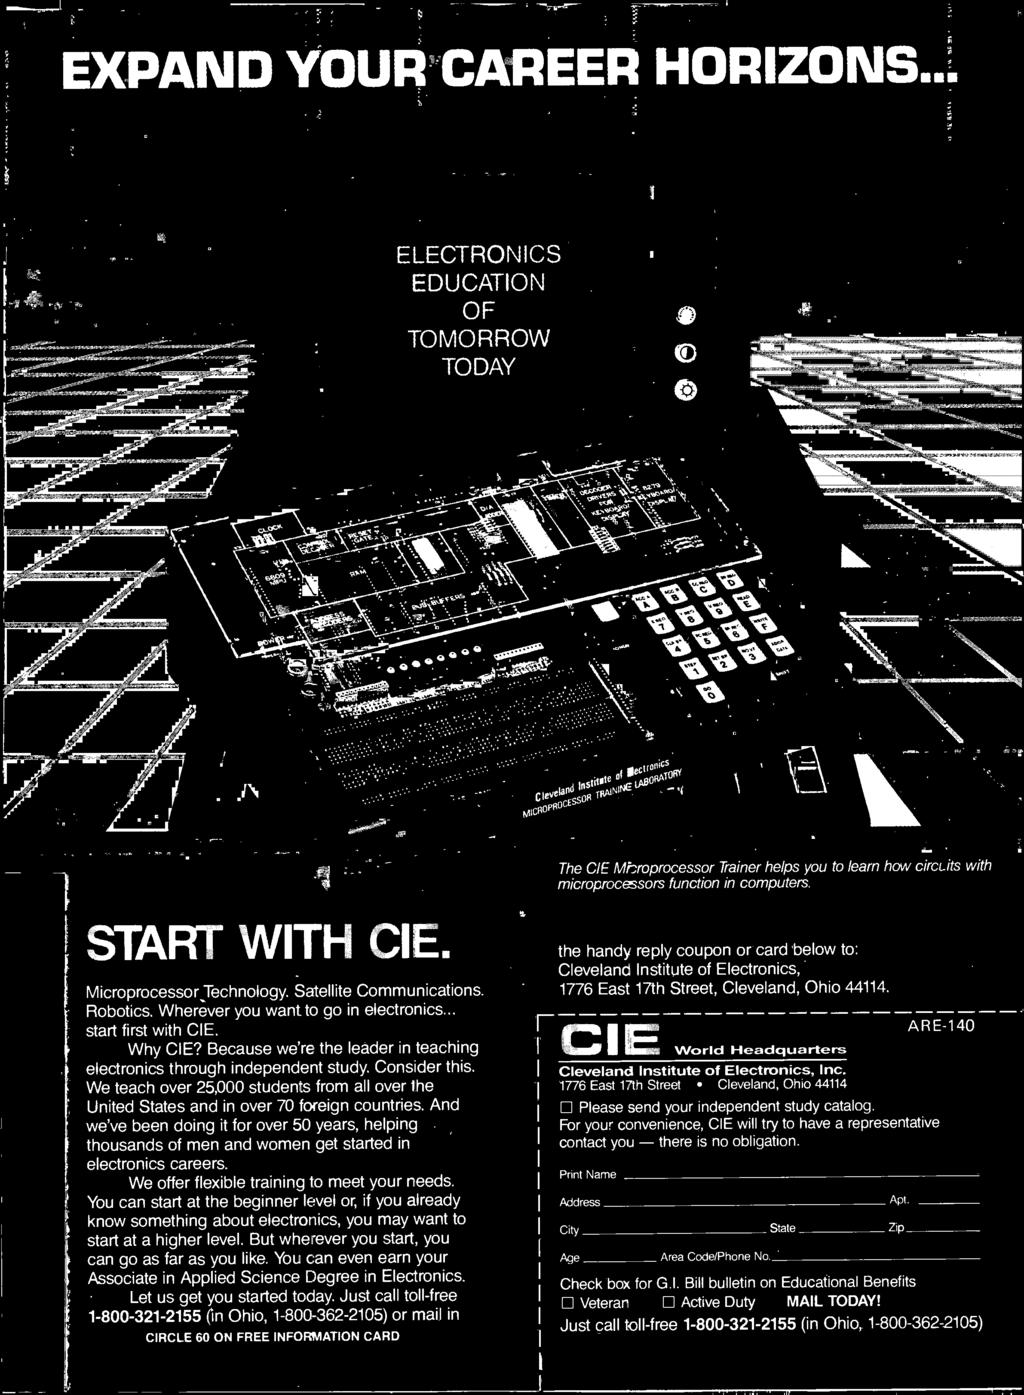 Ectre Build This Spectrum Monitor Op Ampinstr Architectures The Electronic Circuitscom Mixed Circuits Delabs Schematics And Weve Been Doing It For Over 50 Years Helping Thousands Of Men